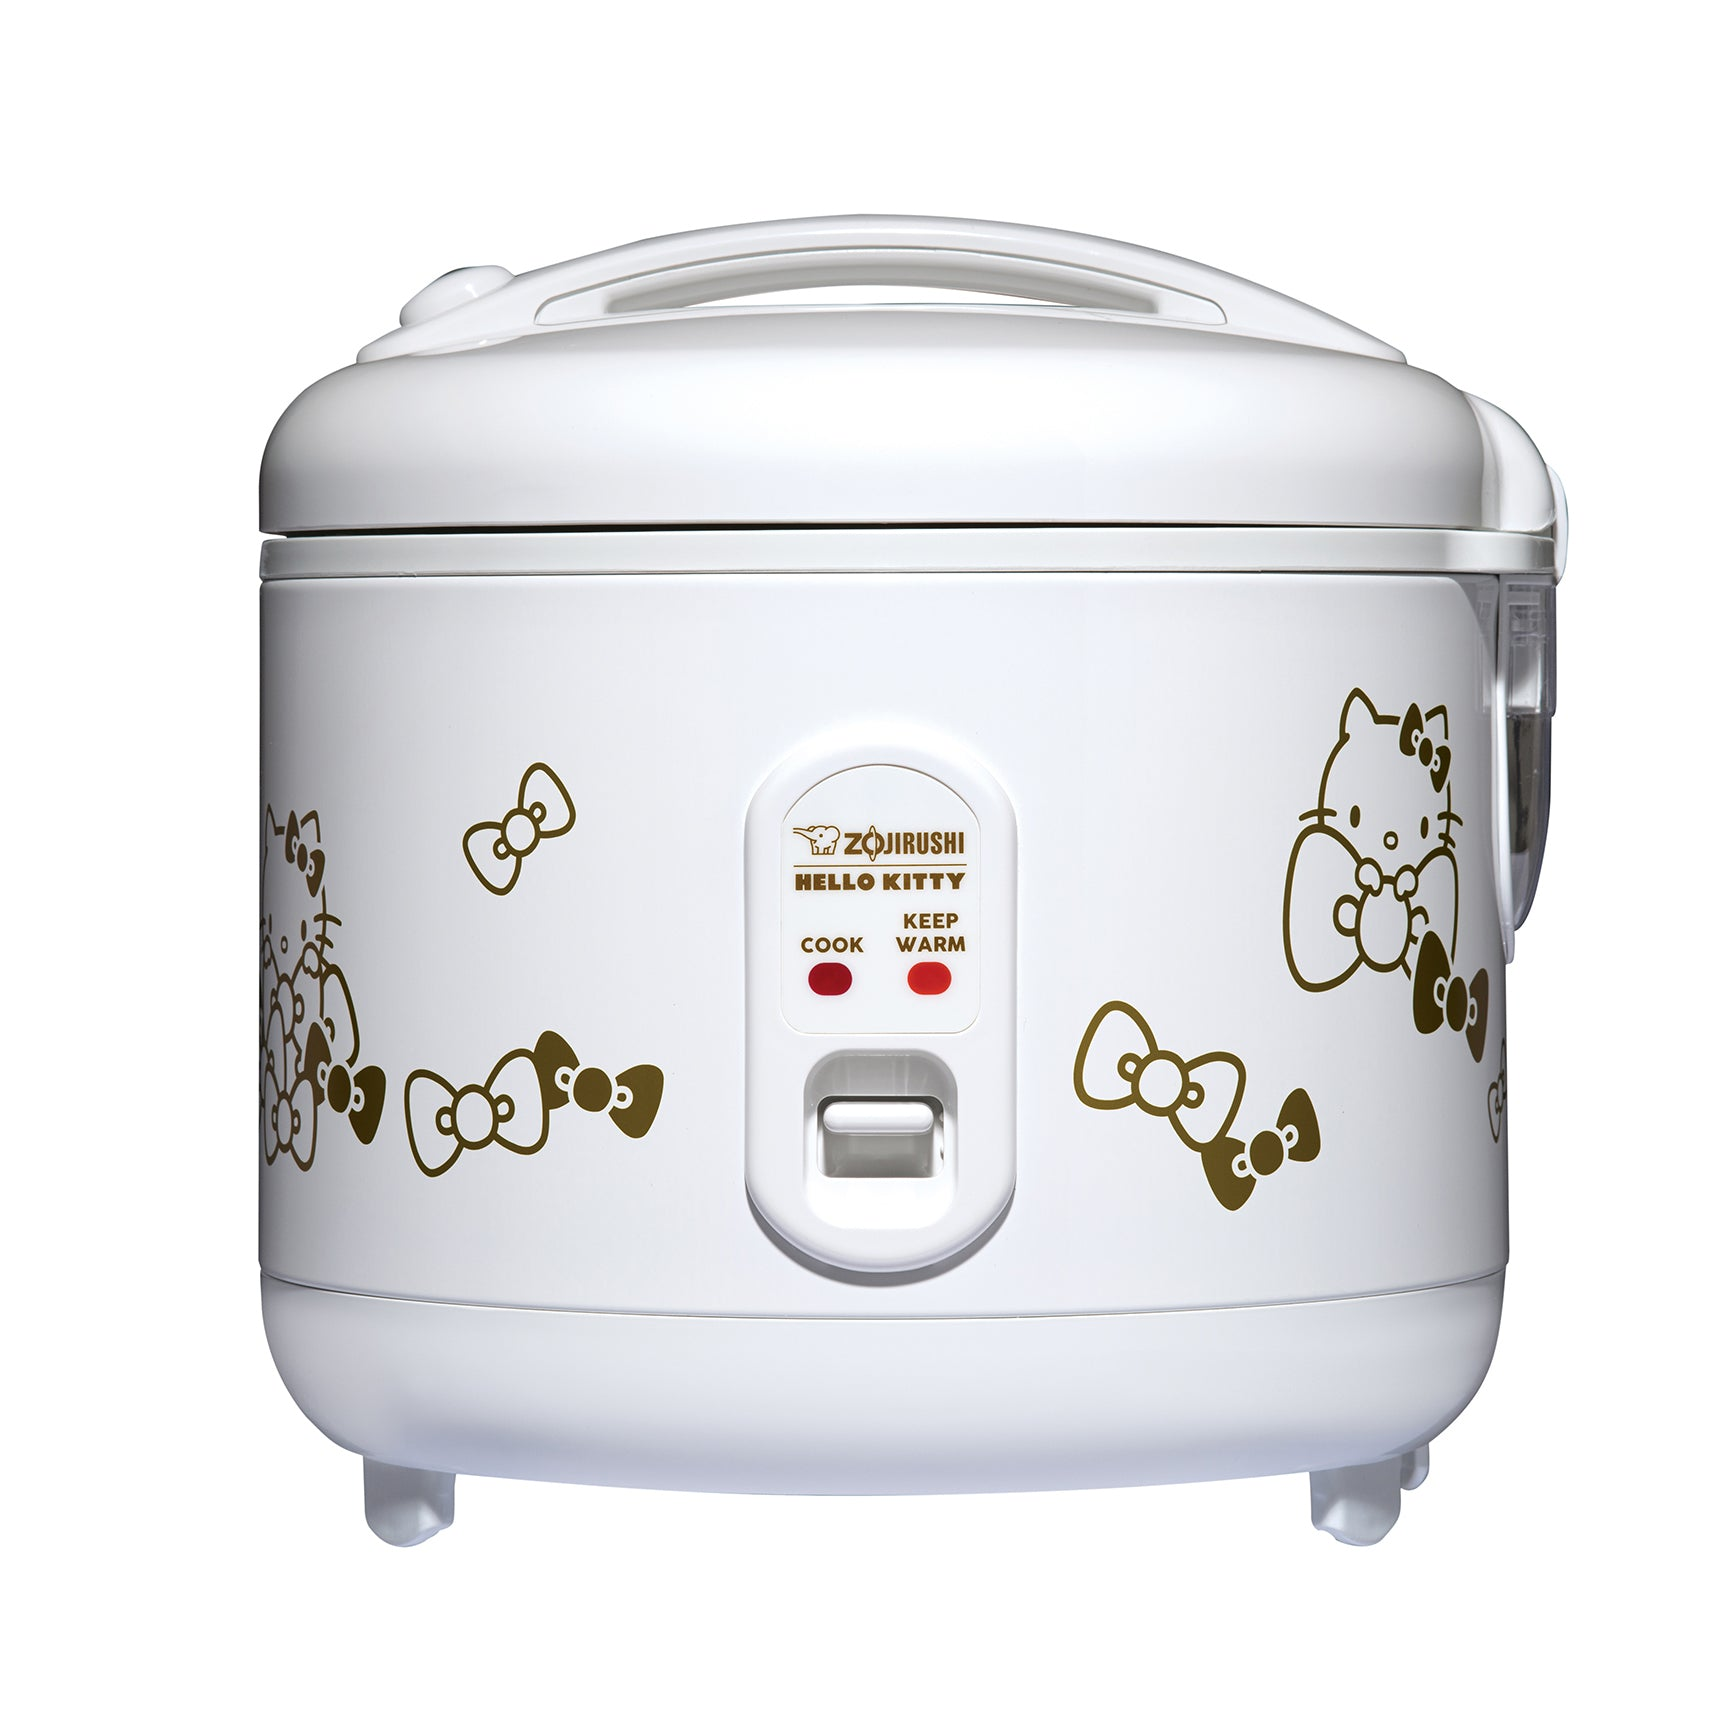 Zojirushi x Hello Kitty Automatic Rice Cooker & Warmer